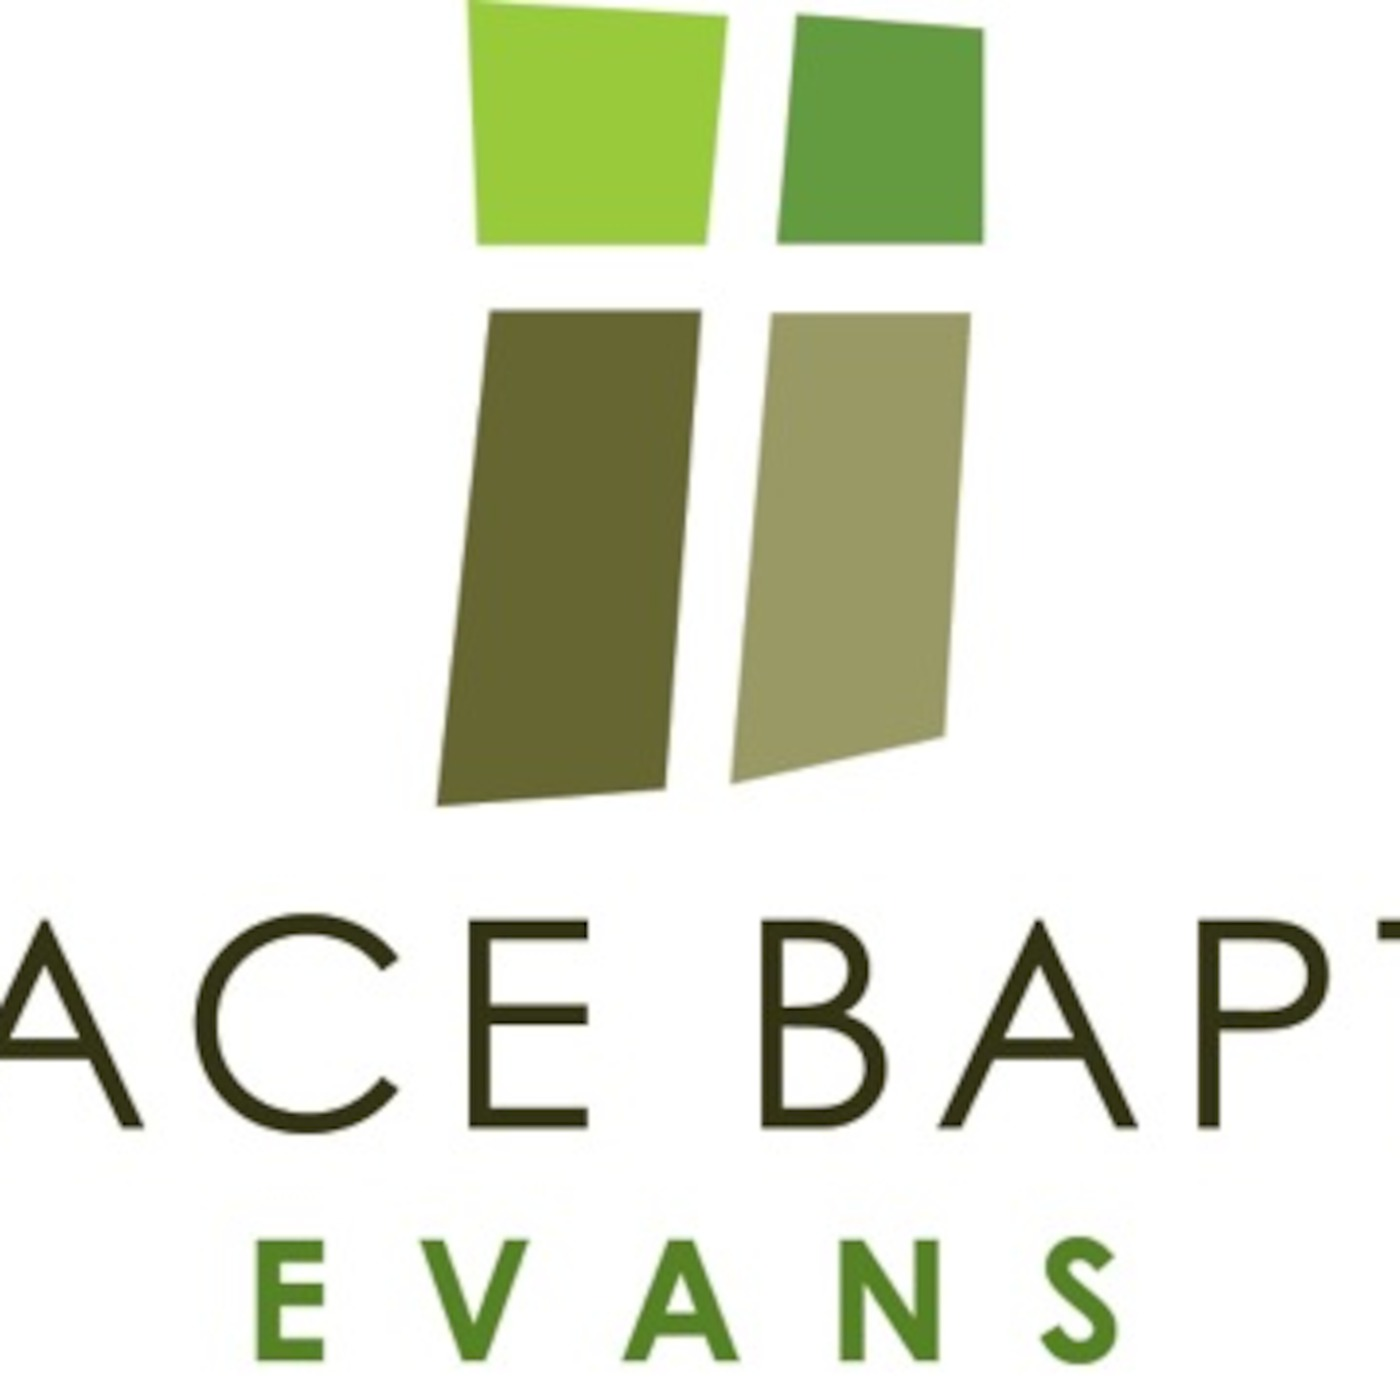 Grace Baptist Church - Evans, GA